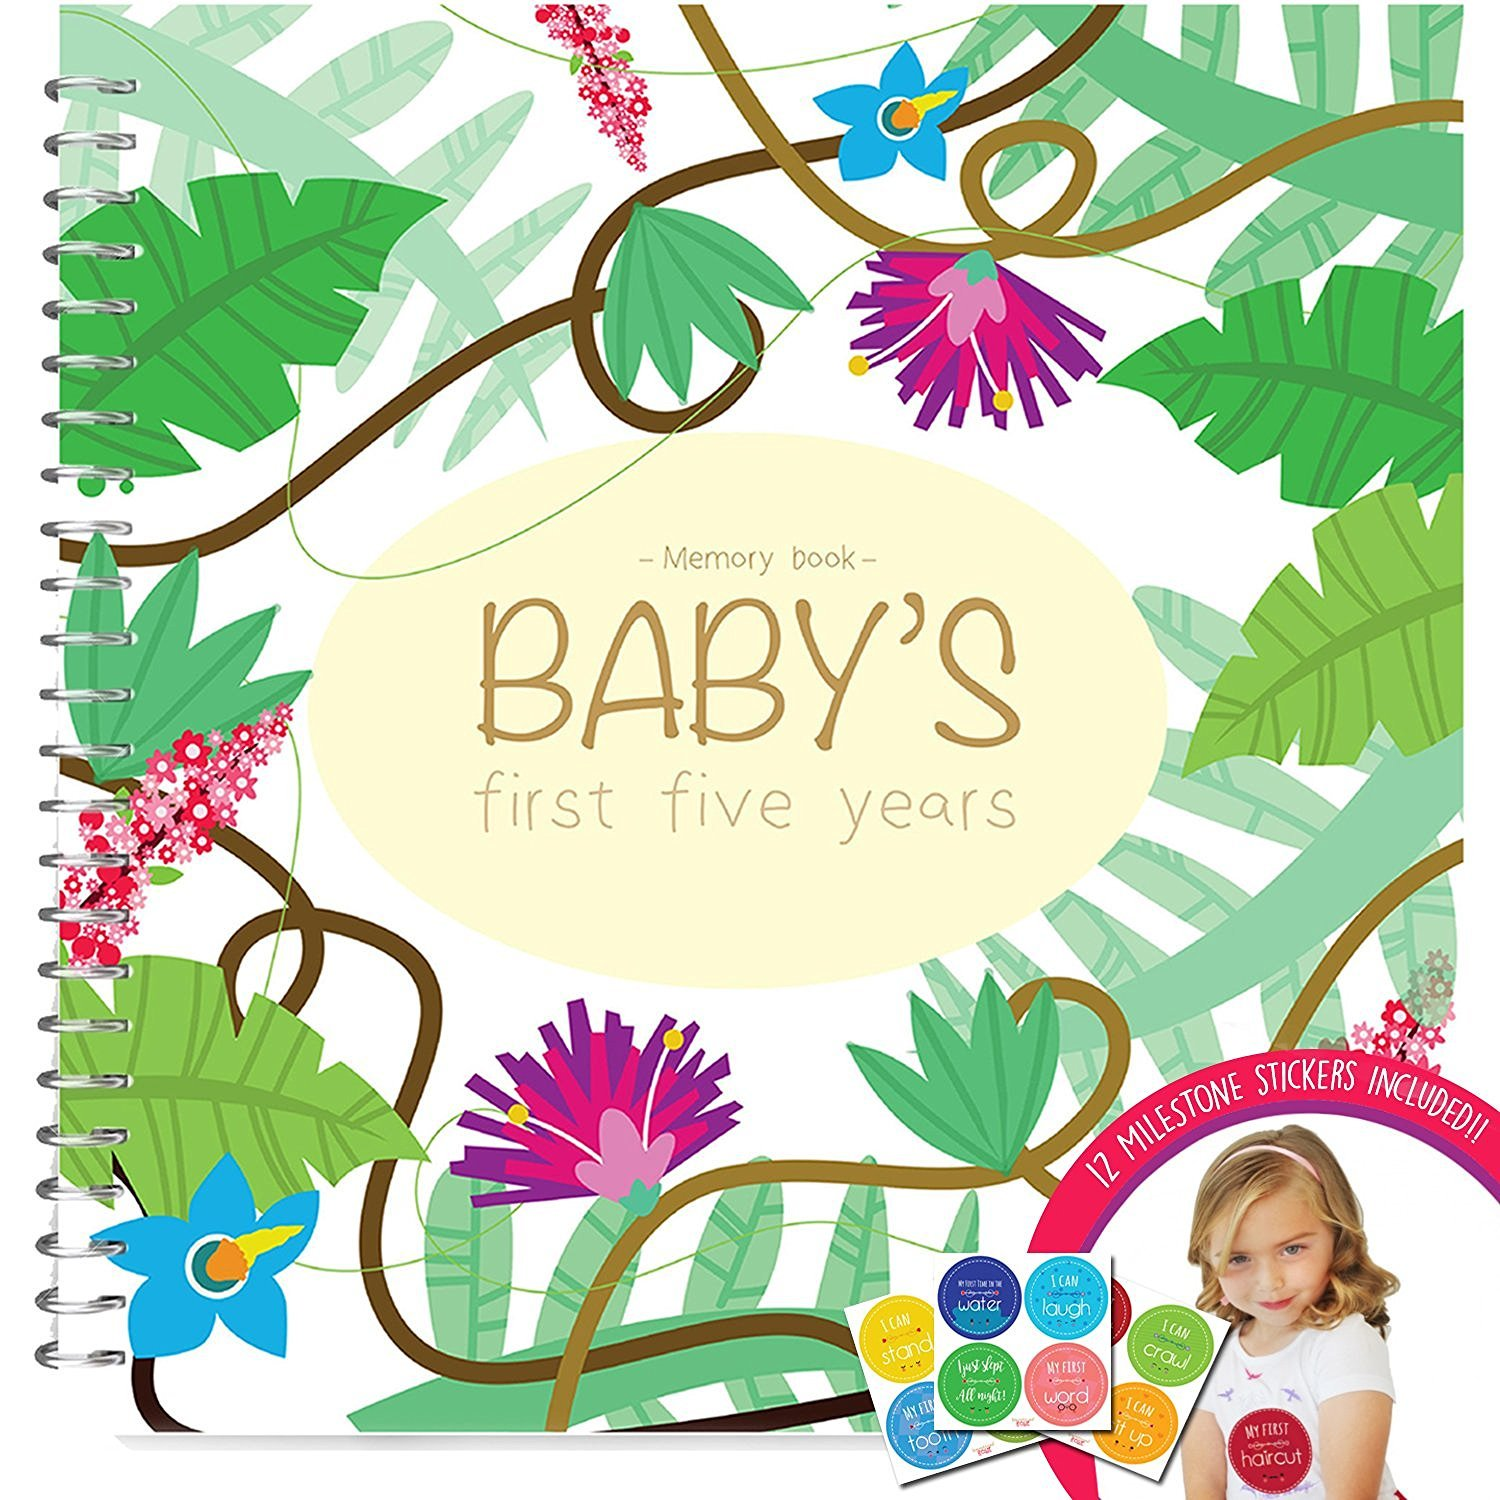 Memory Book Of The First Five Years Of Your Baby Girl - Keep Close All Of The First Memories Of Your Children In A Hard Cover Photo Album And Make The Perfect Keepsake For Mom Or Dad Unconditional Rosie S5JUNGLE